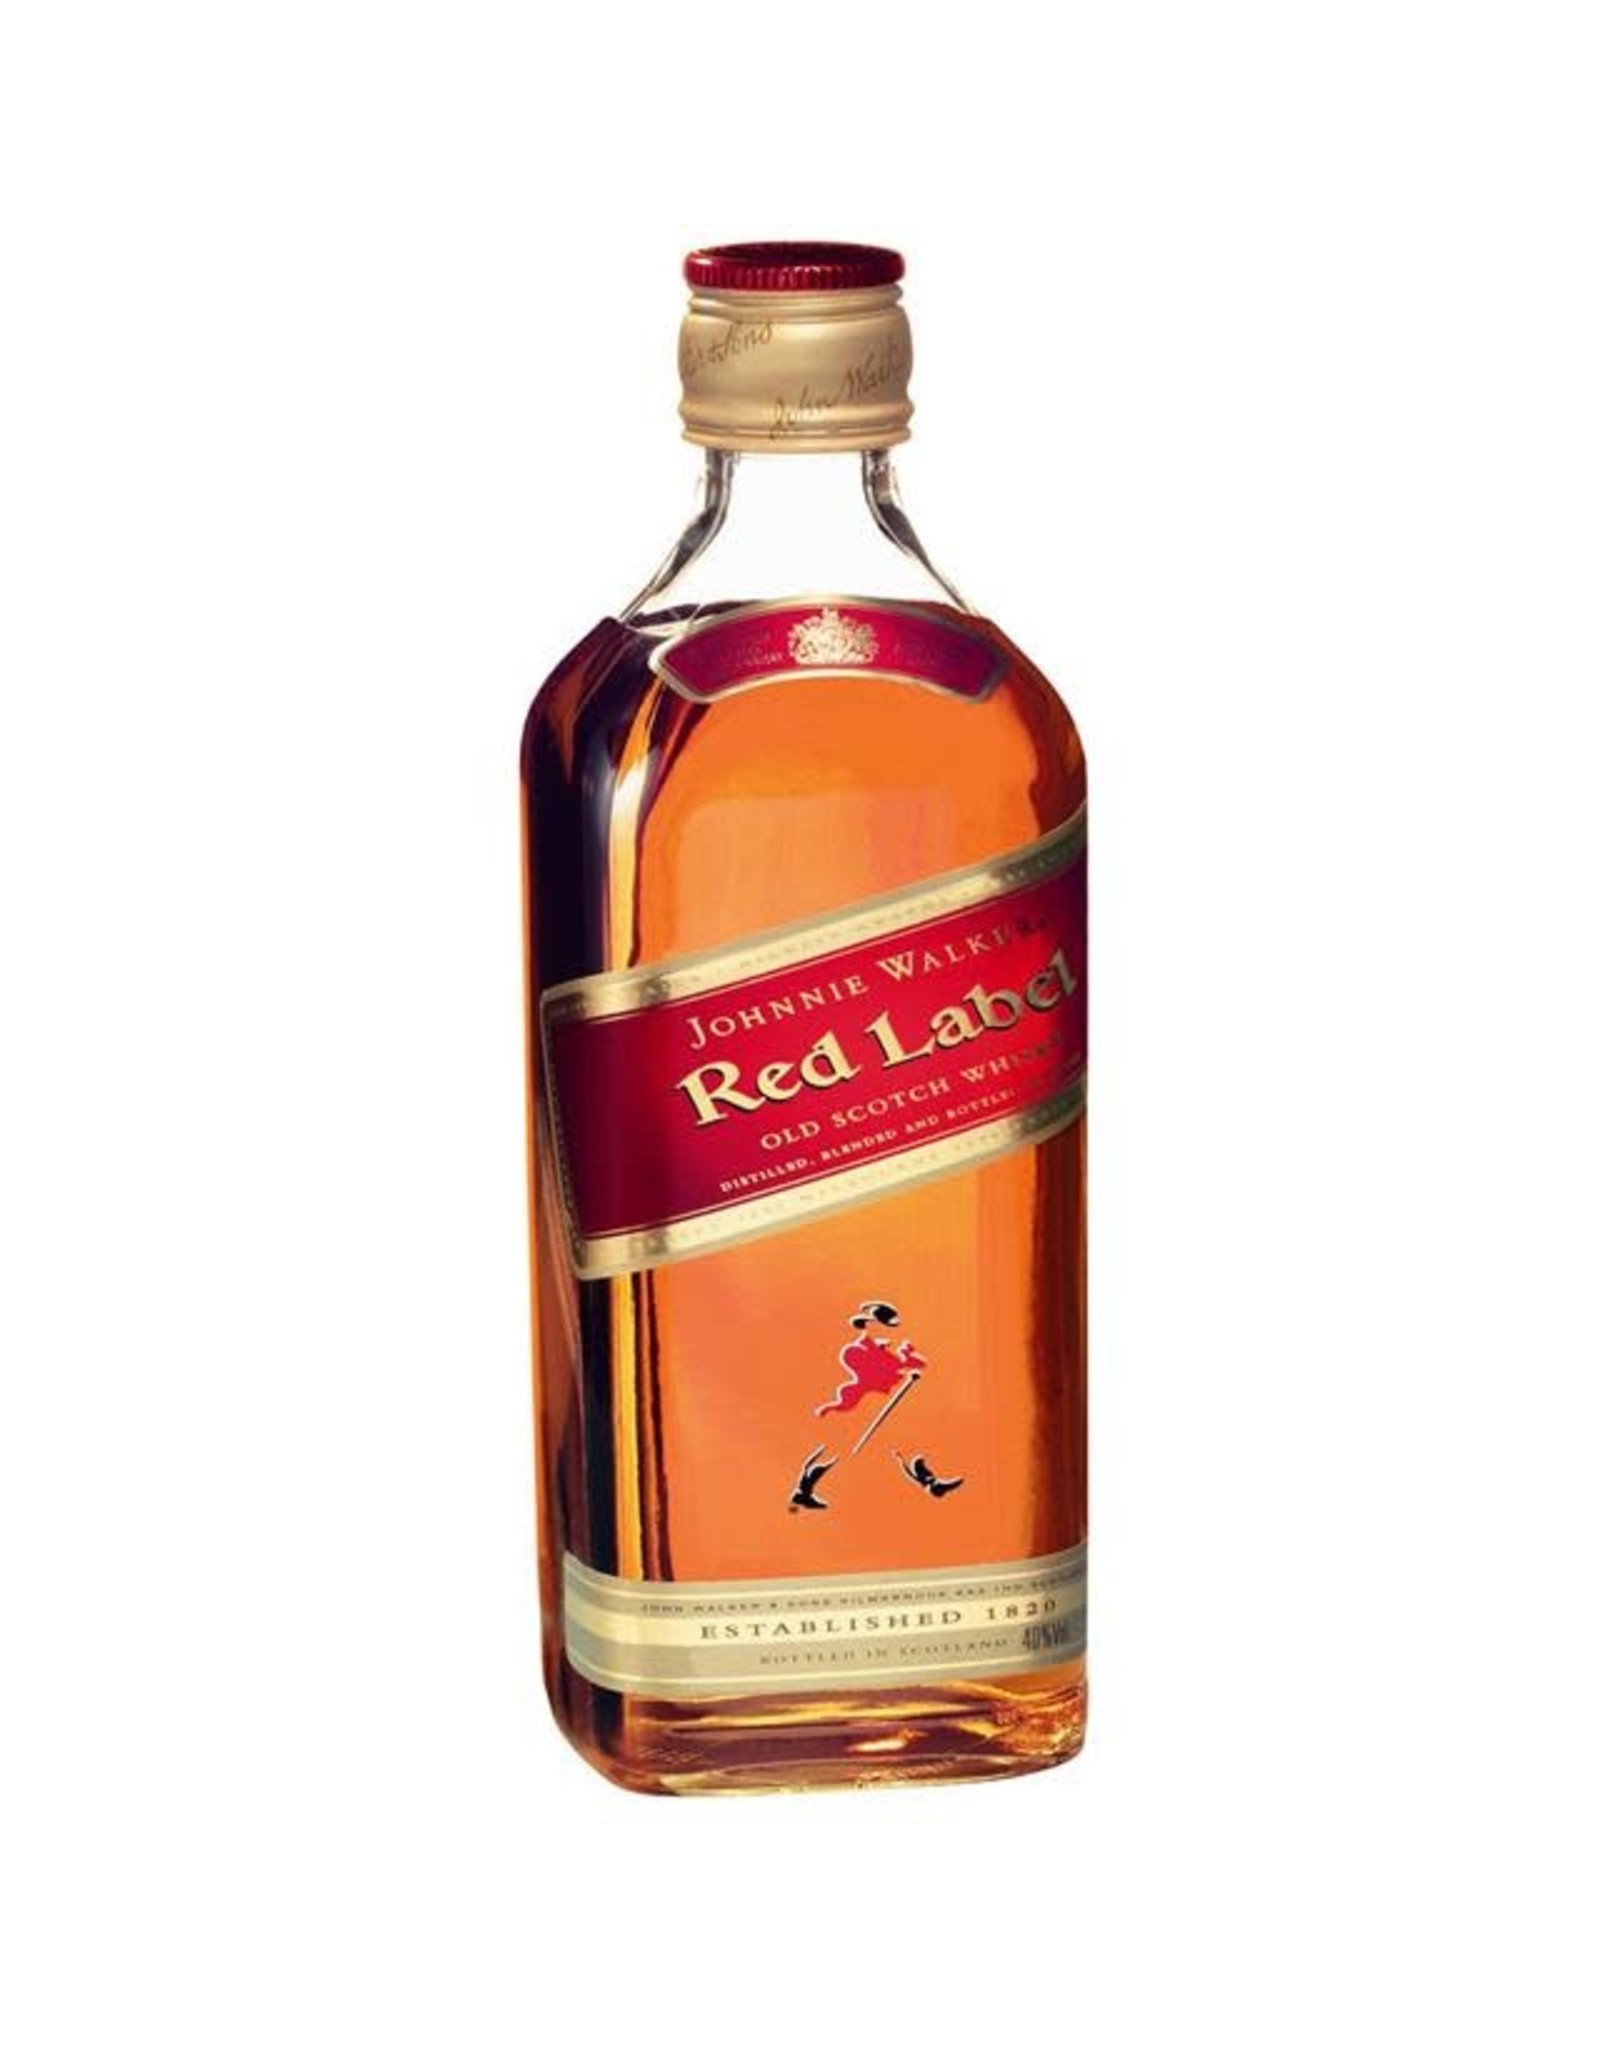 JOHNNIE WALKER RED LABEL SCOTCH 1.75L